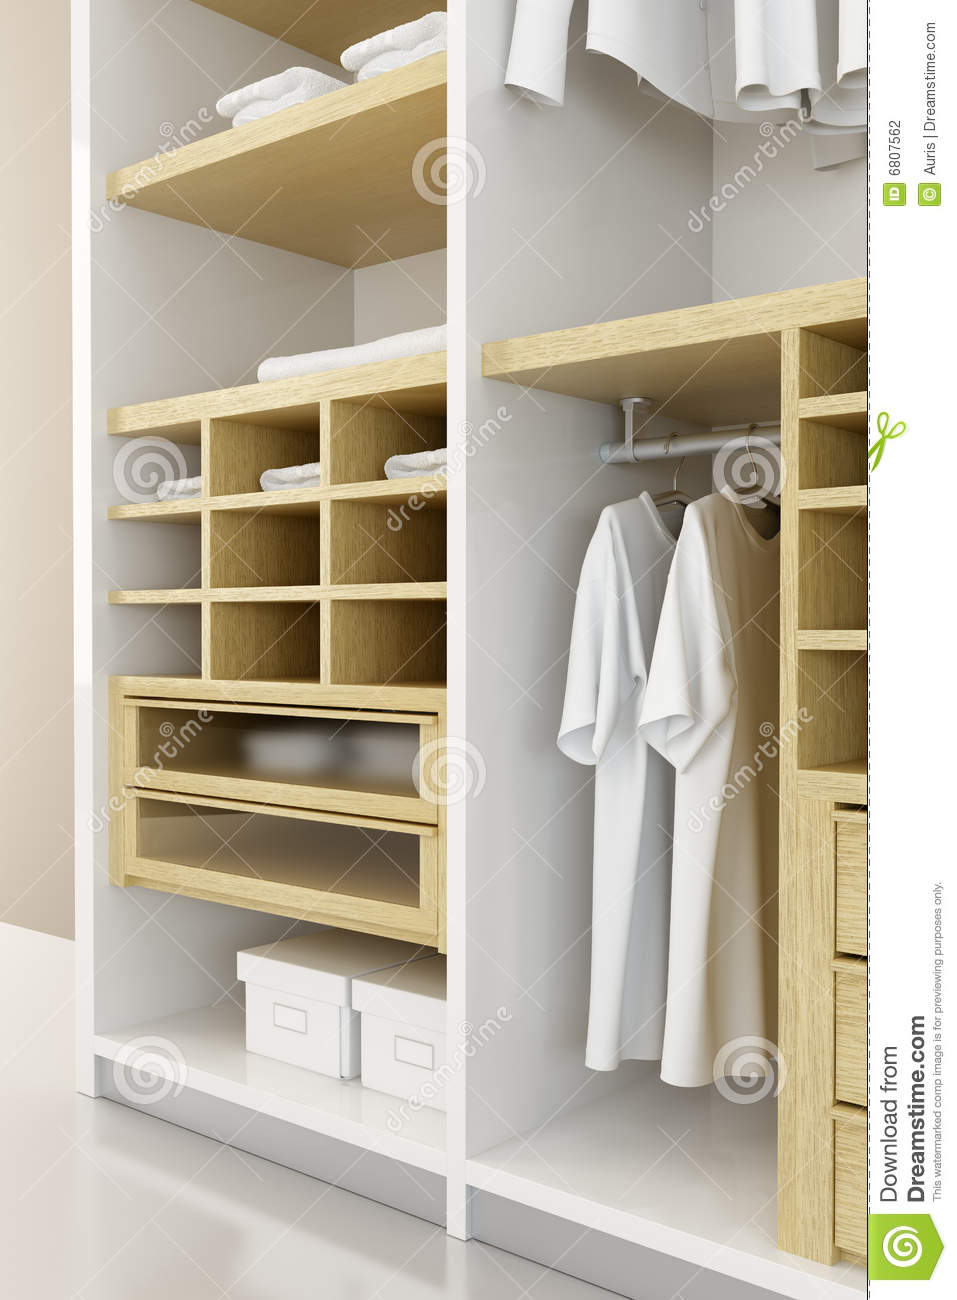 Inside the closet 3d rendering stock photography image 6807562 - Free closet design software online ...